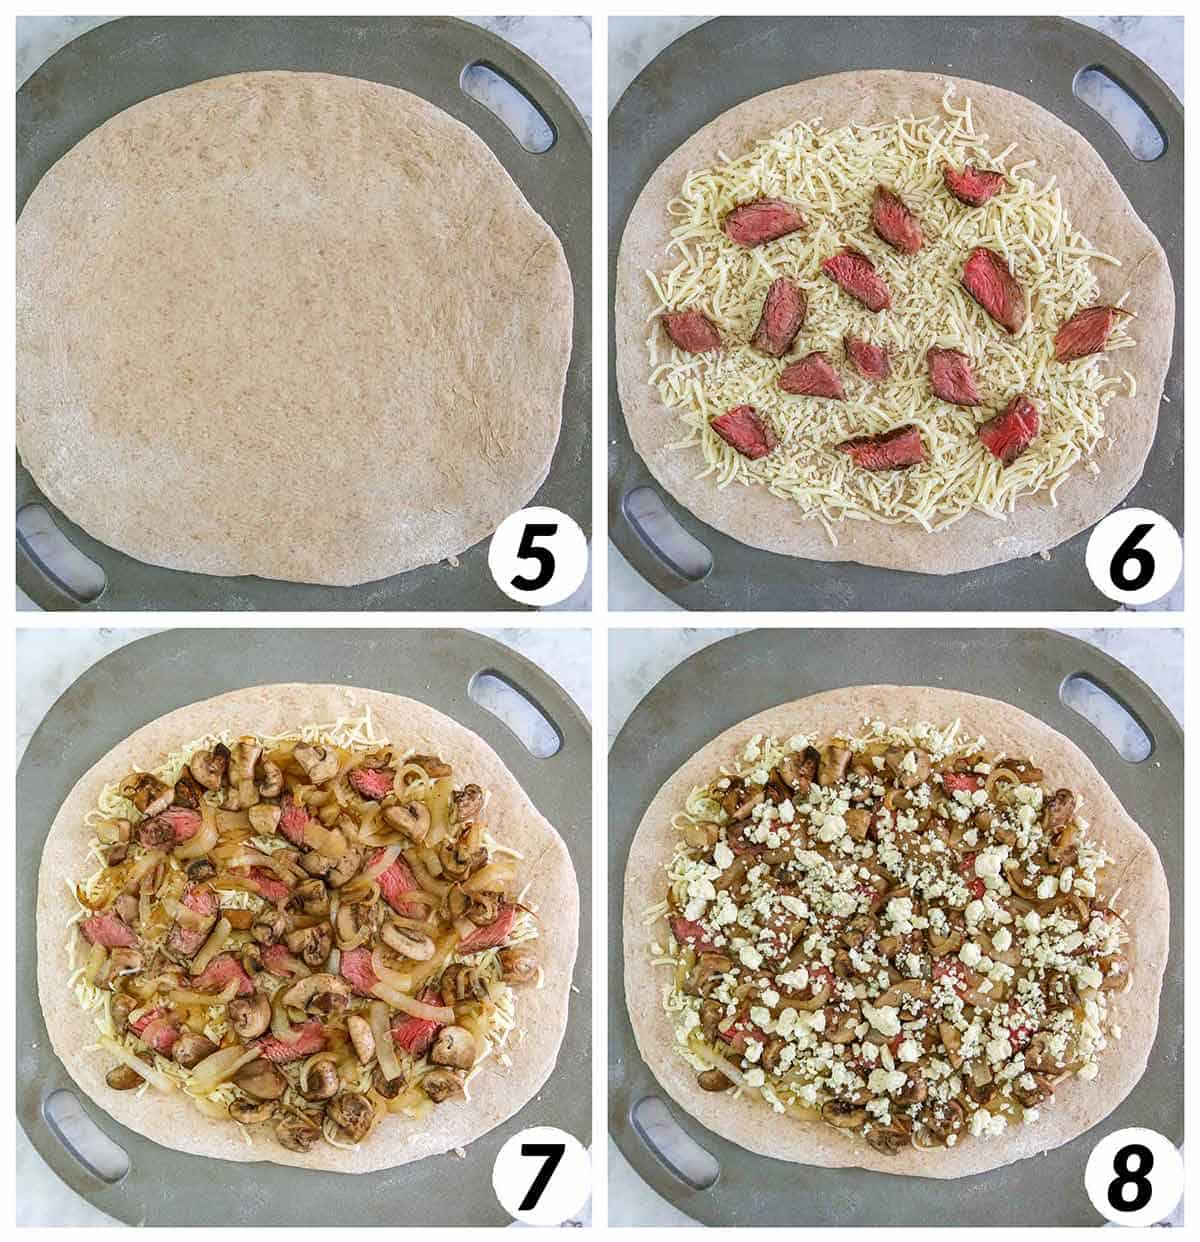 Four panel collage of process steps 5-6. Layering ingredients on top of pizza dough and baking.